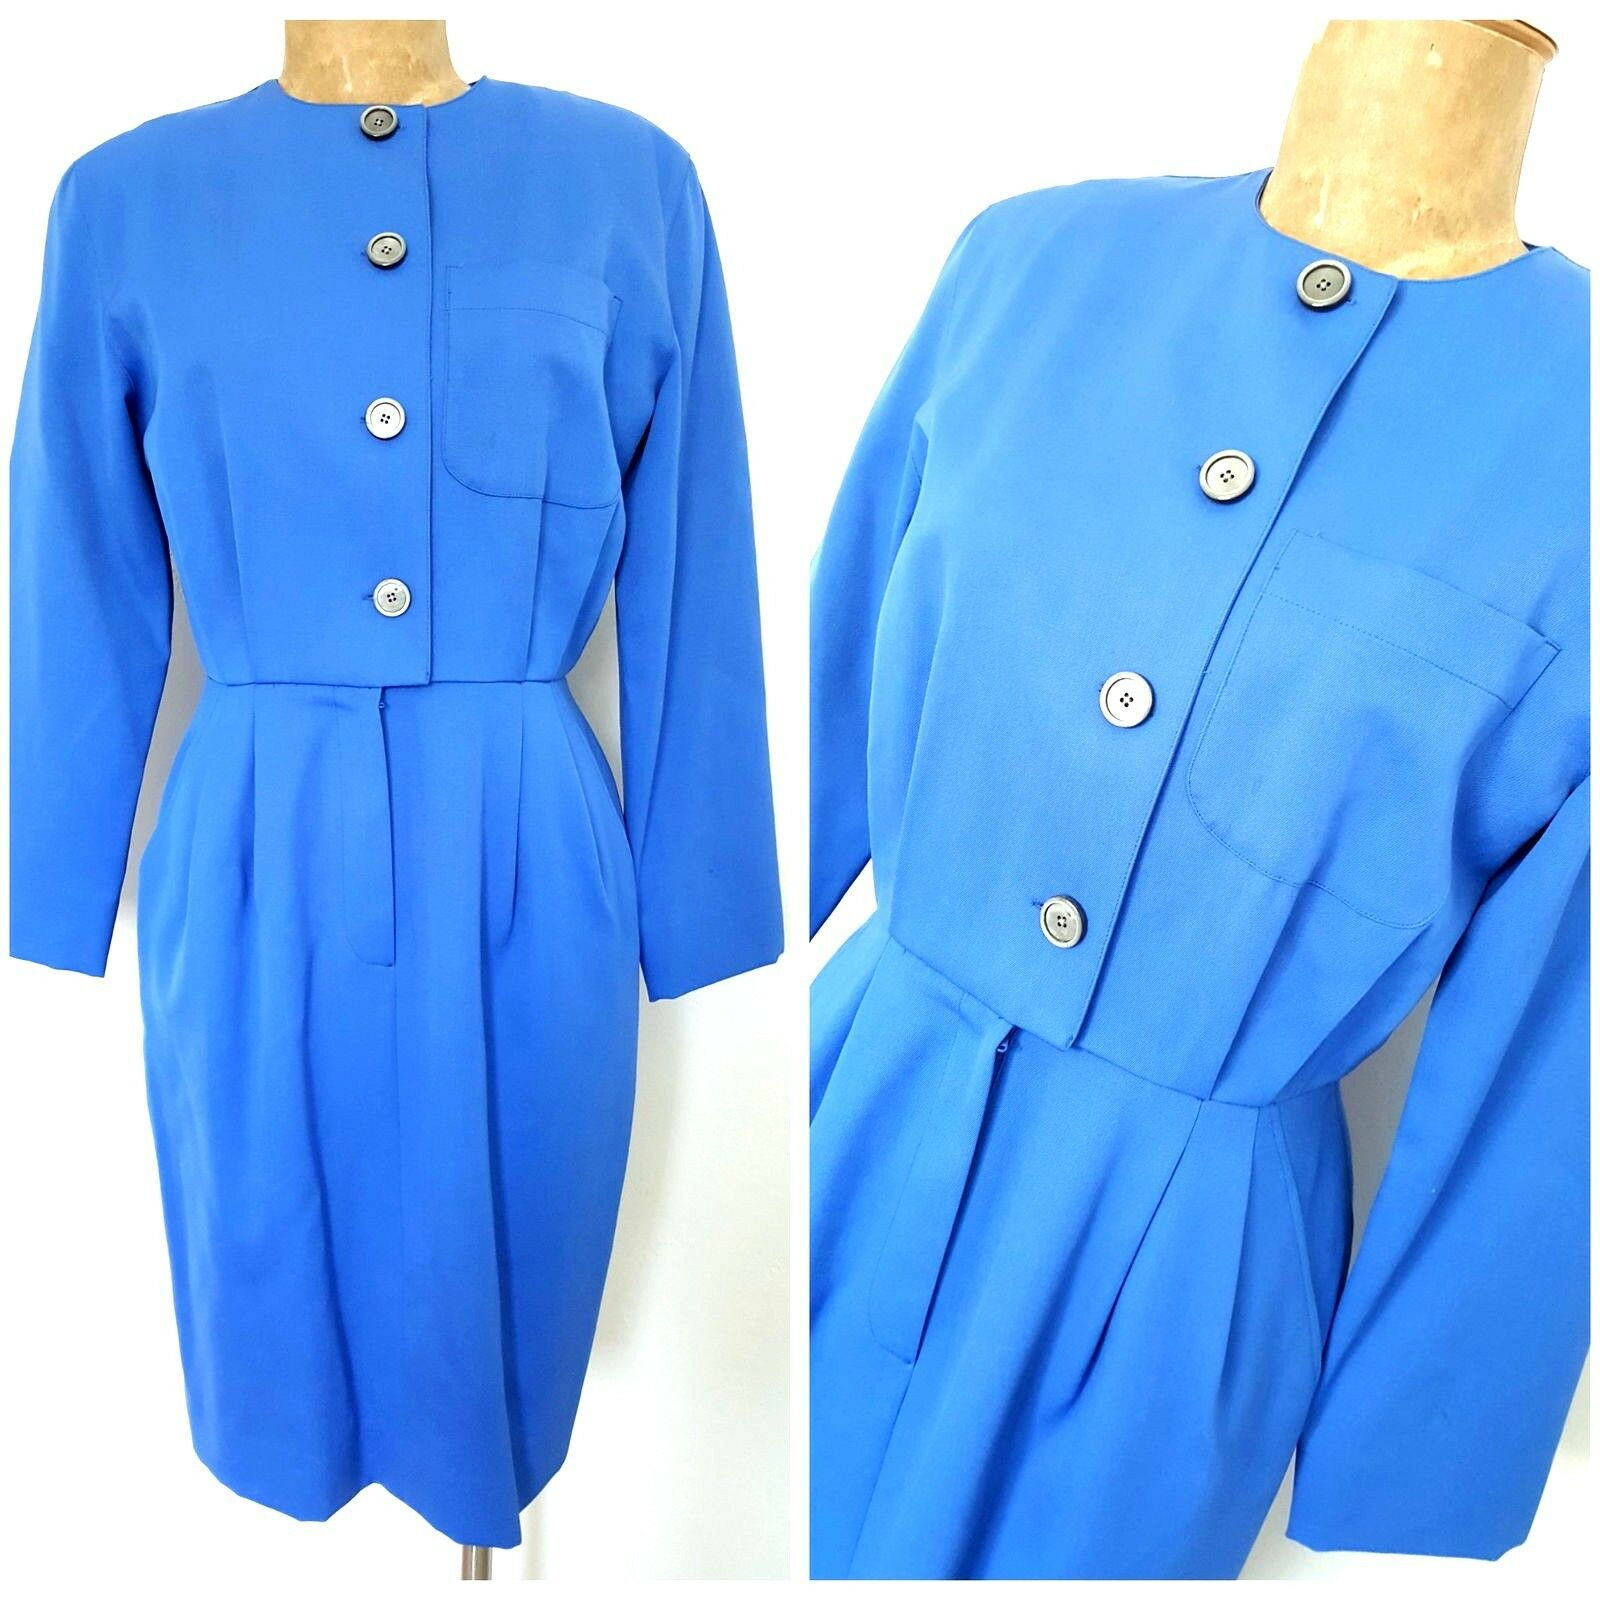 Vintage 80s Wool Secretary Dress Size Medium bluee Pencil Career Pleated Business